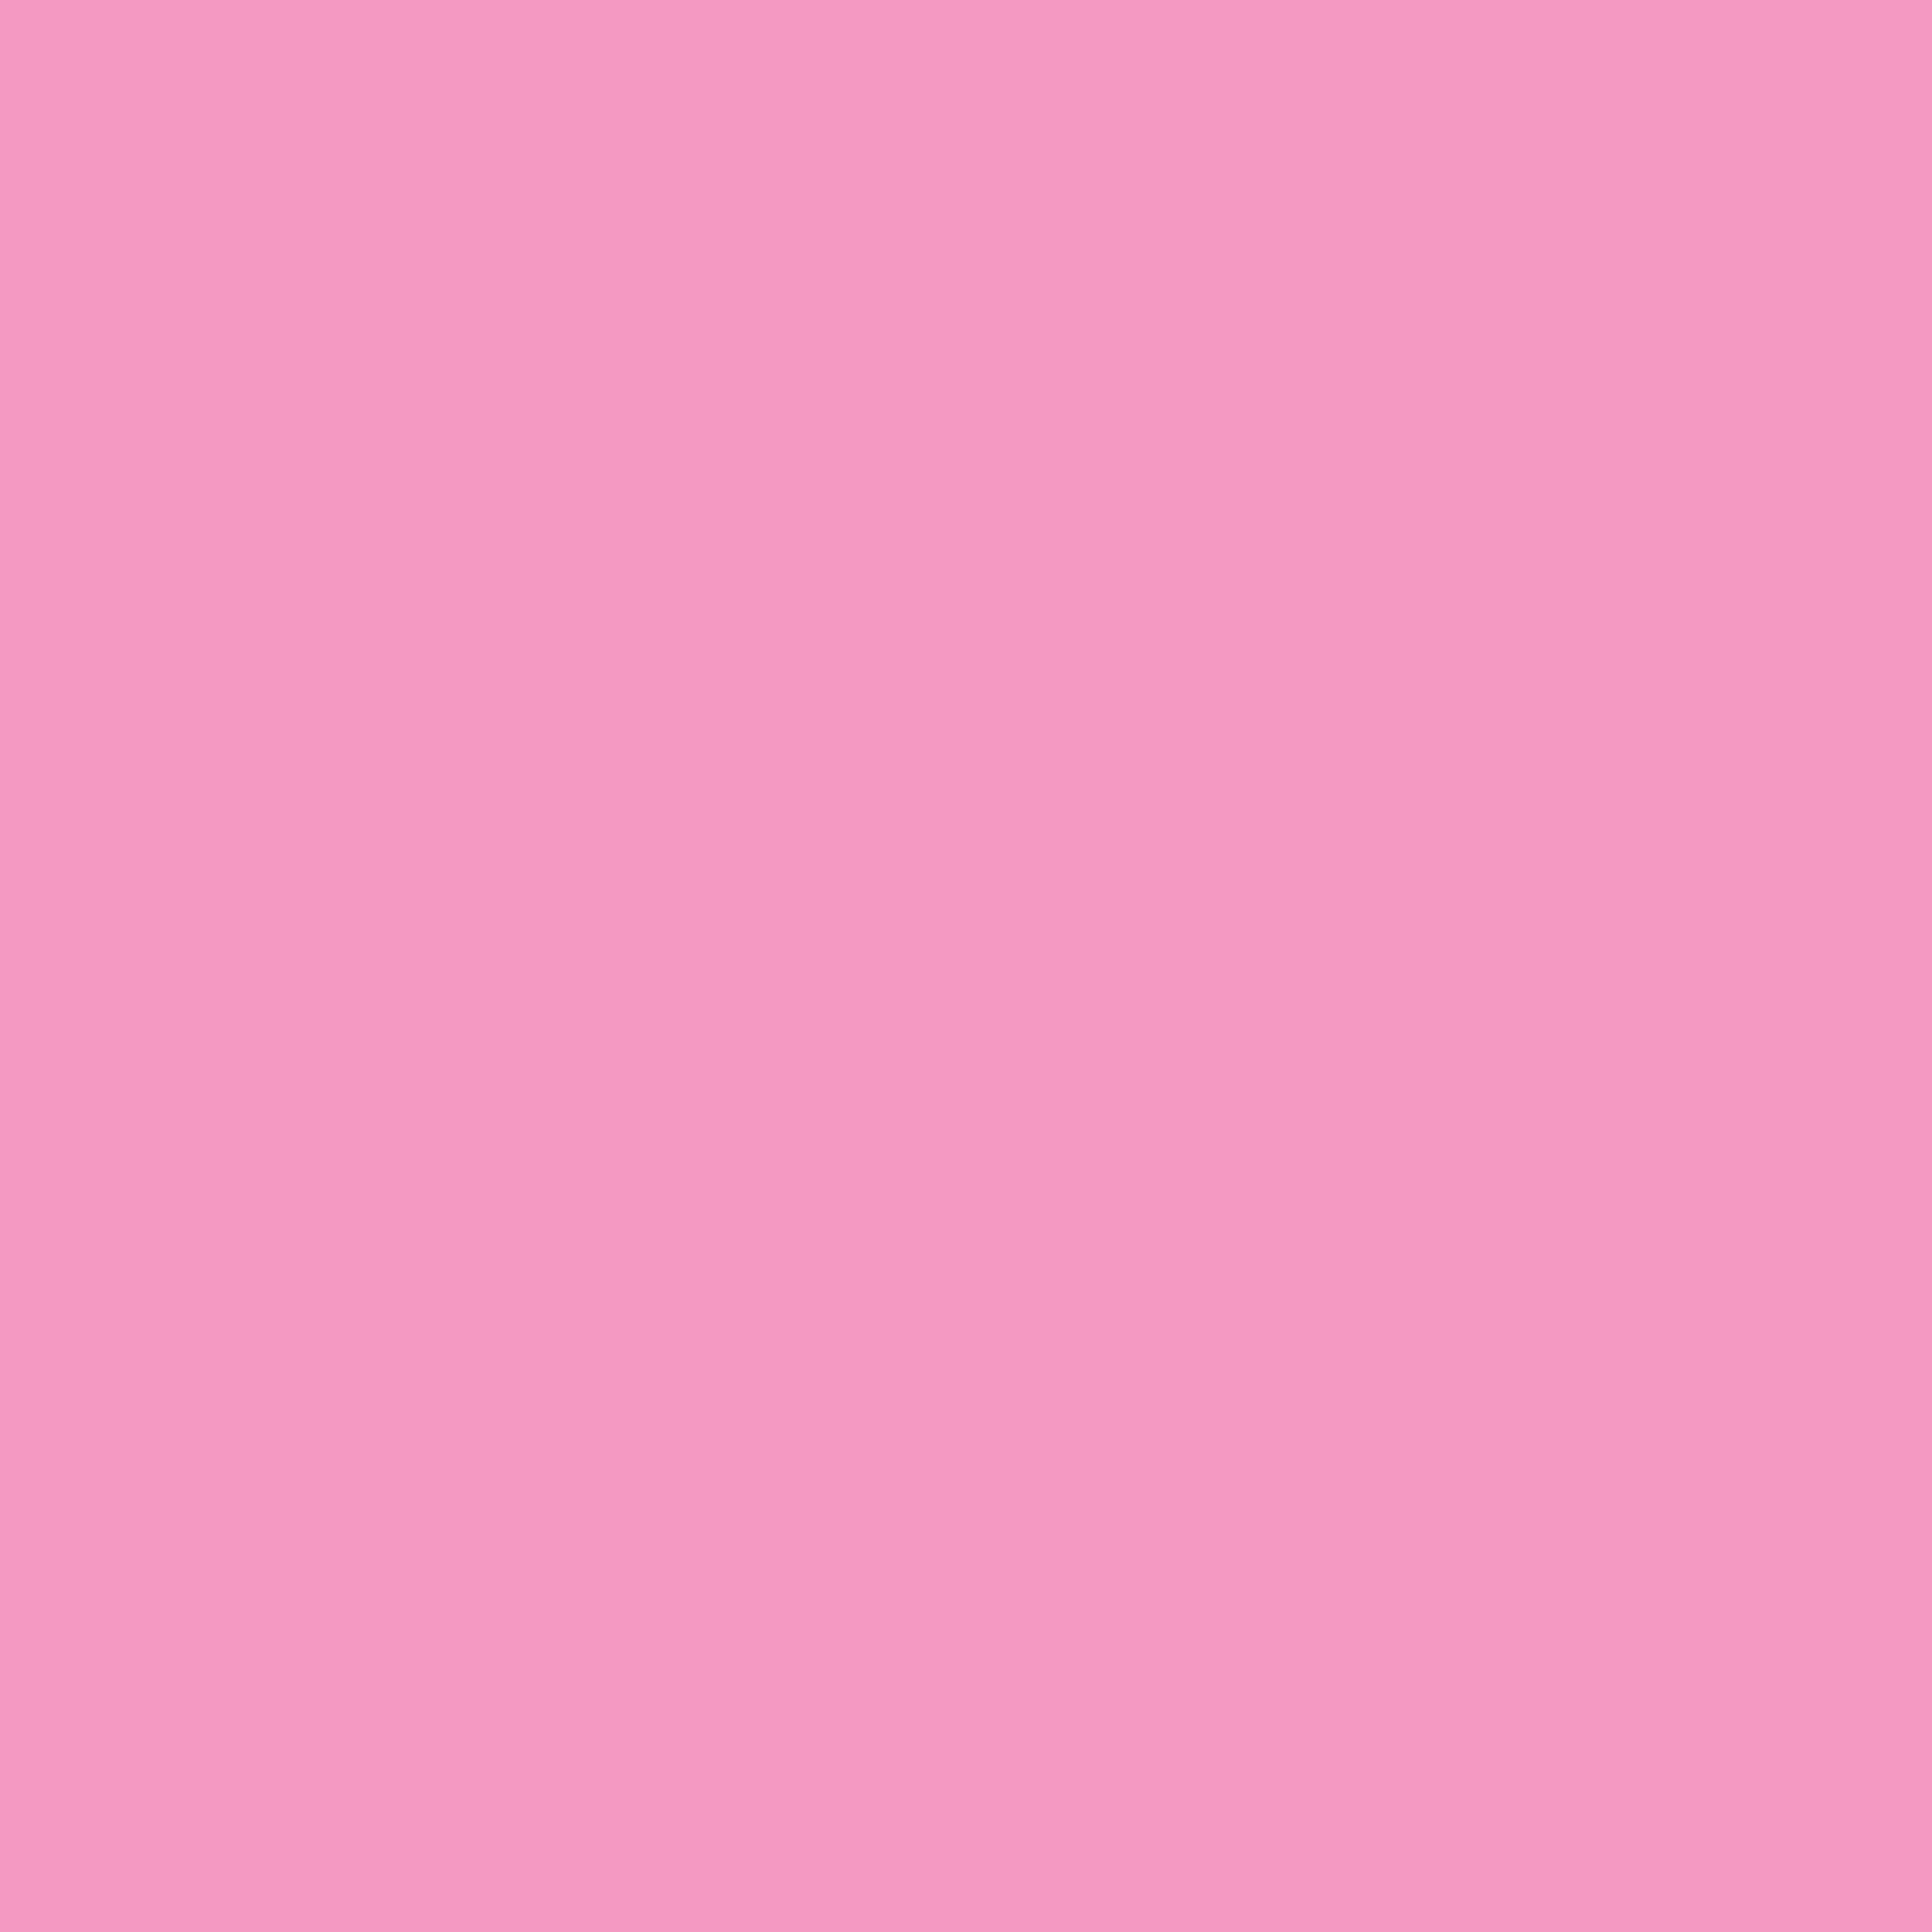 2732x2732 Pastel Magenta Solid Color Background